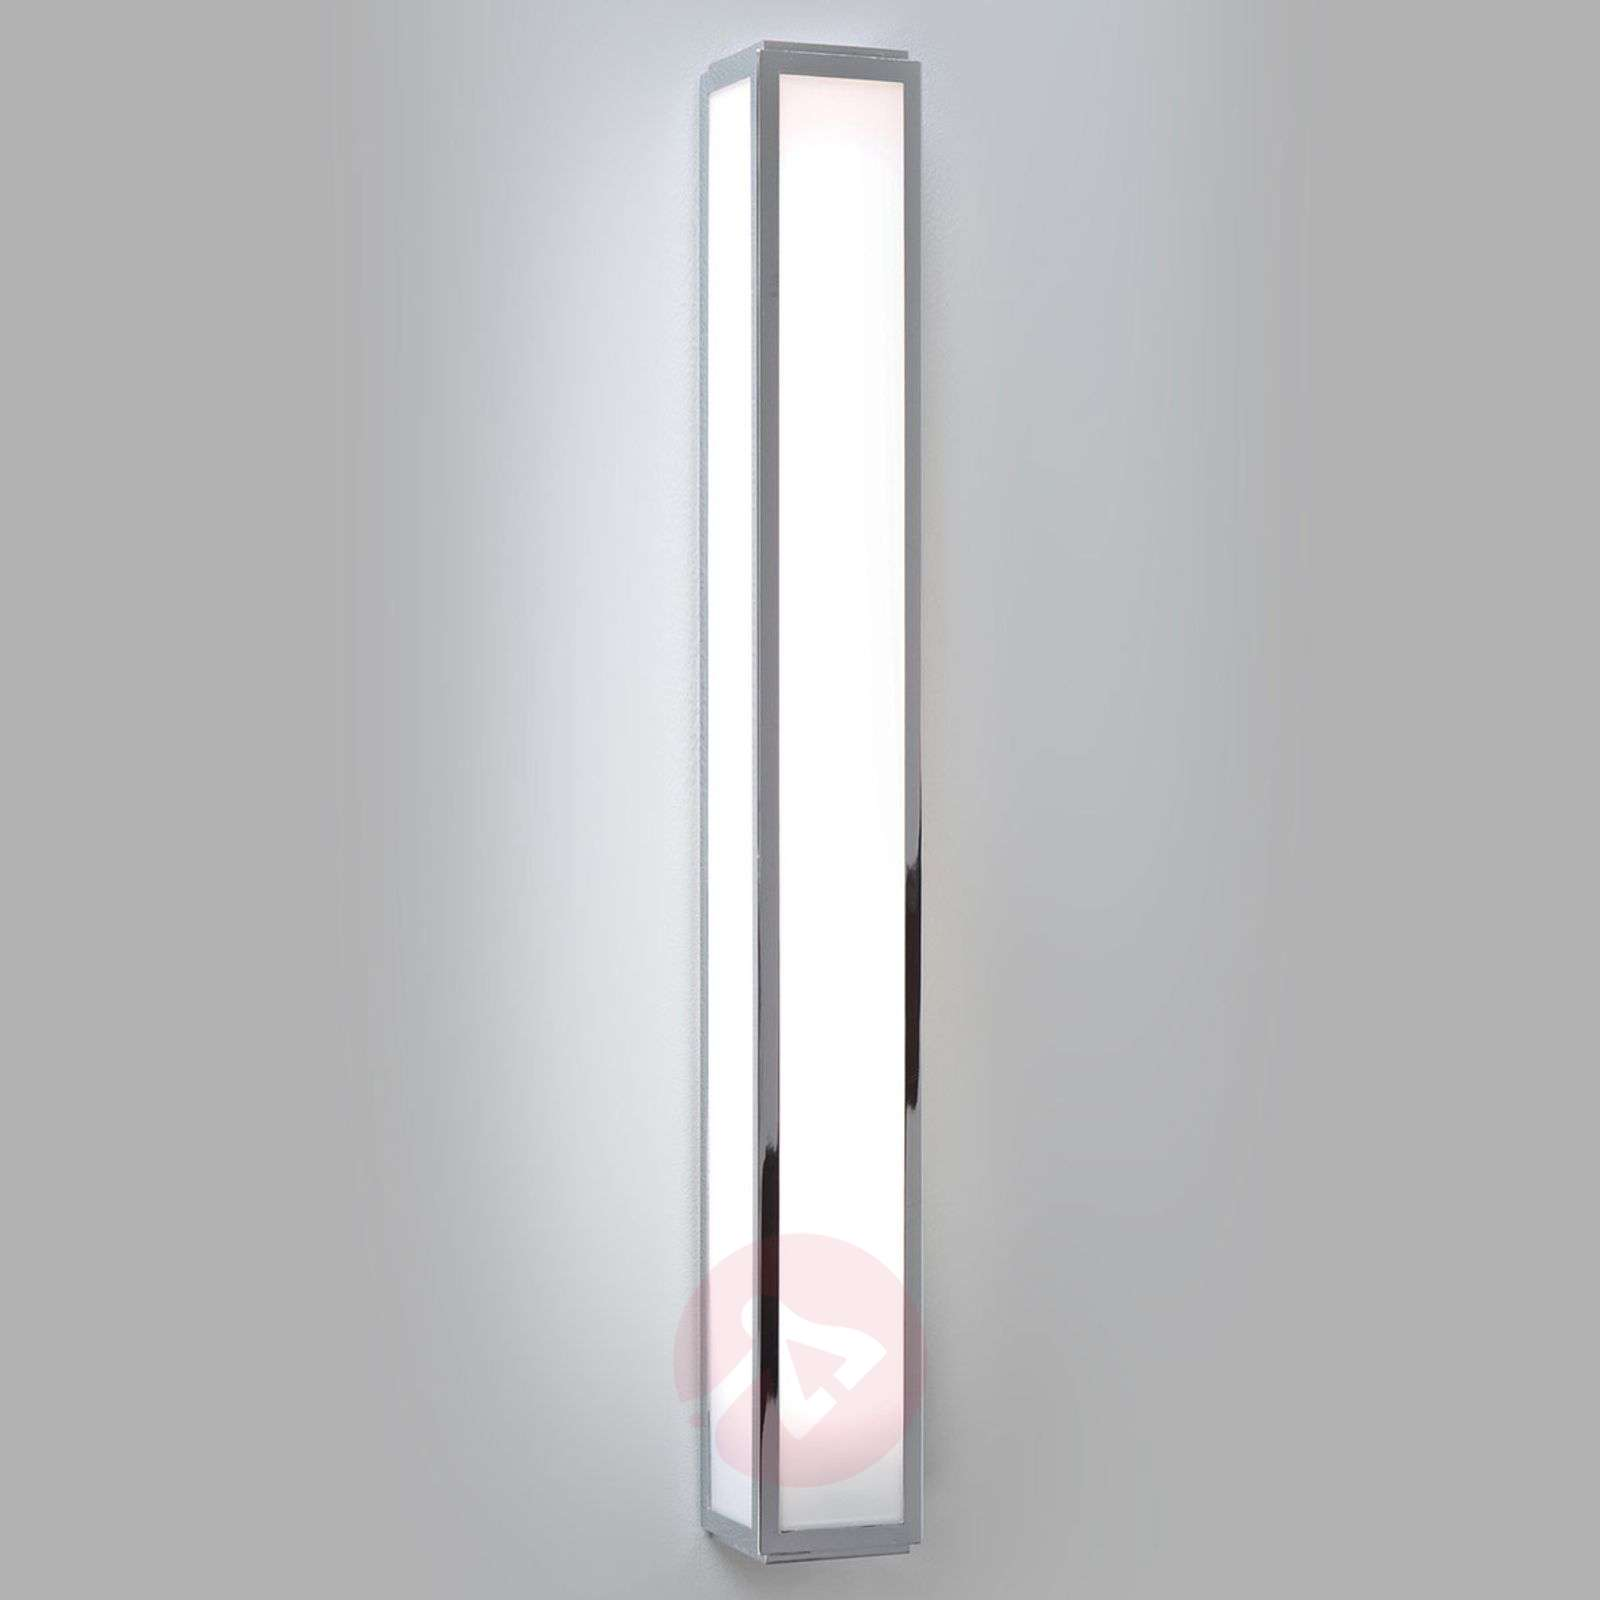 Lámpara de pared LED MASHIKO 600 LED-1020485-02